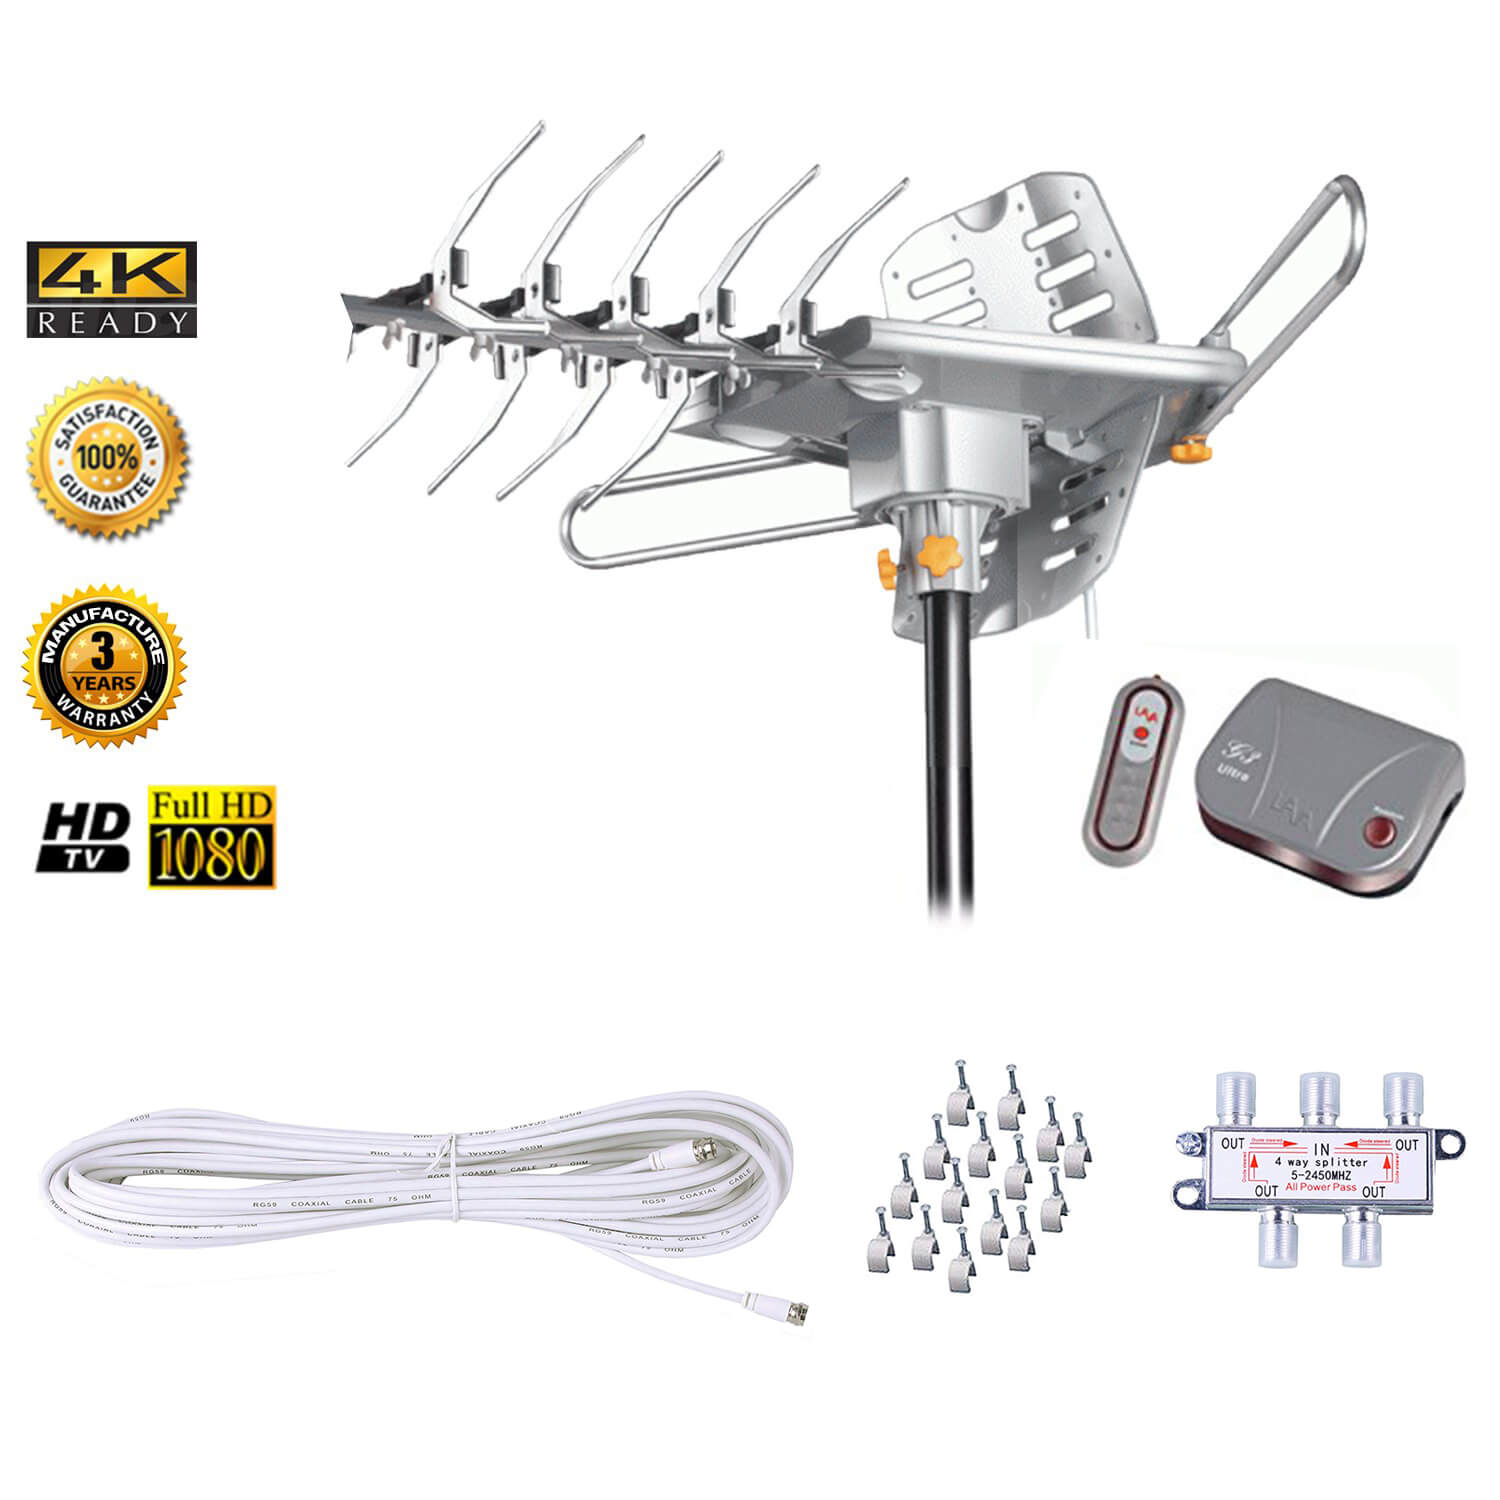 Lava Electronics HD-2605 UHF/VHF HDTV Antenna with Remote Control